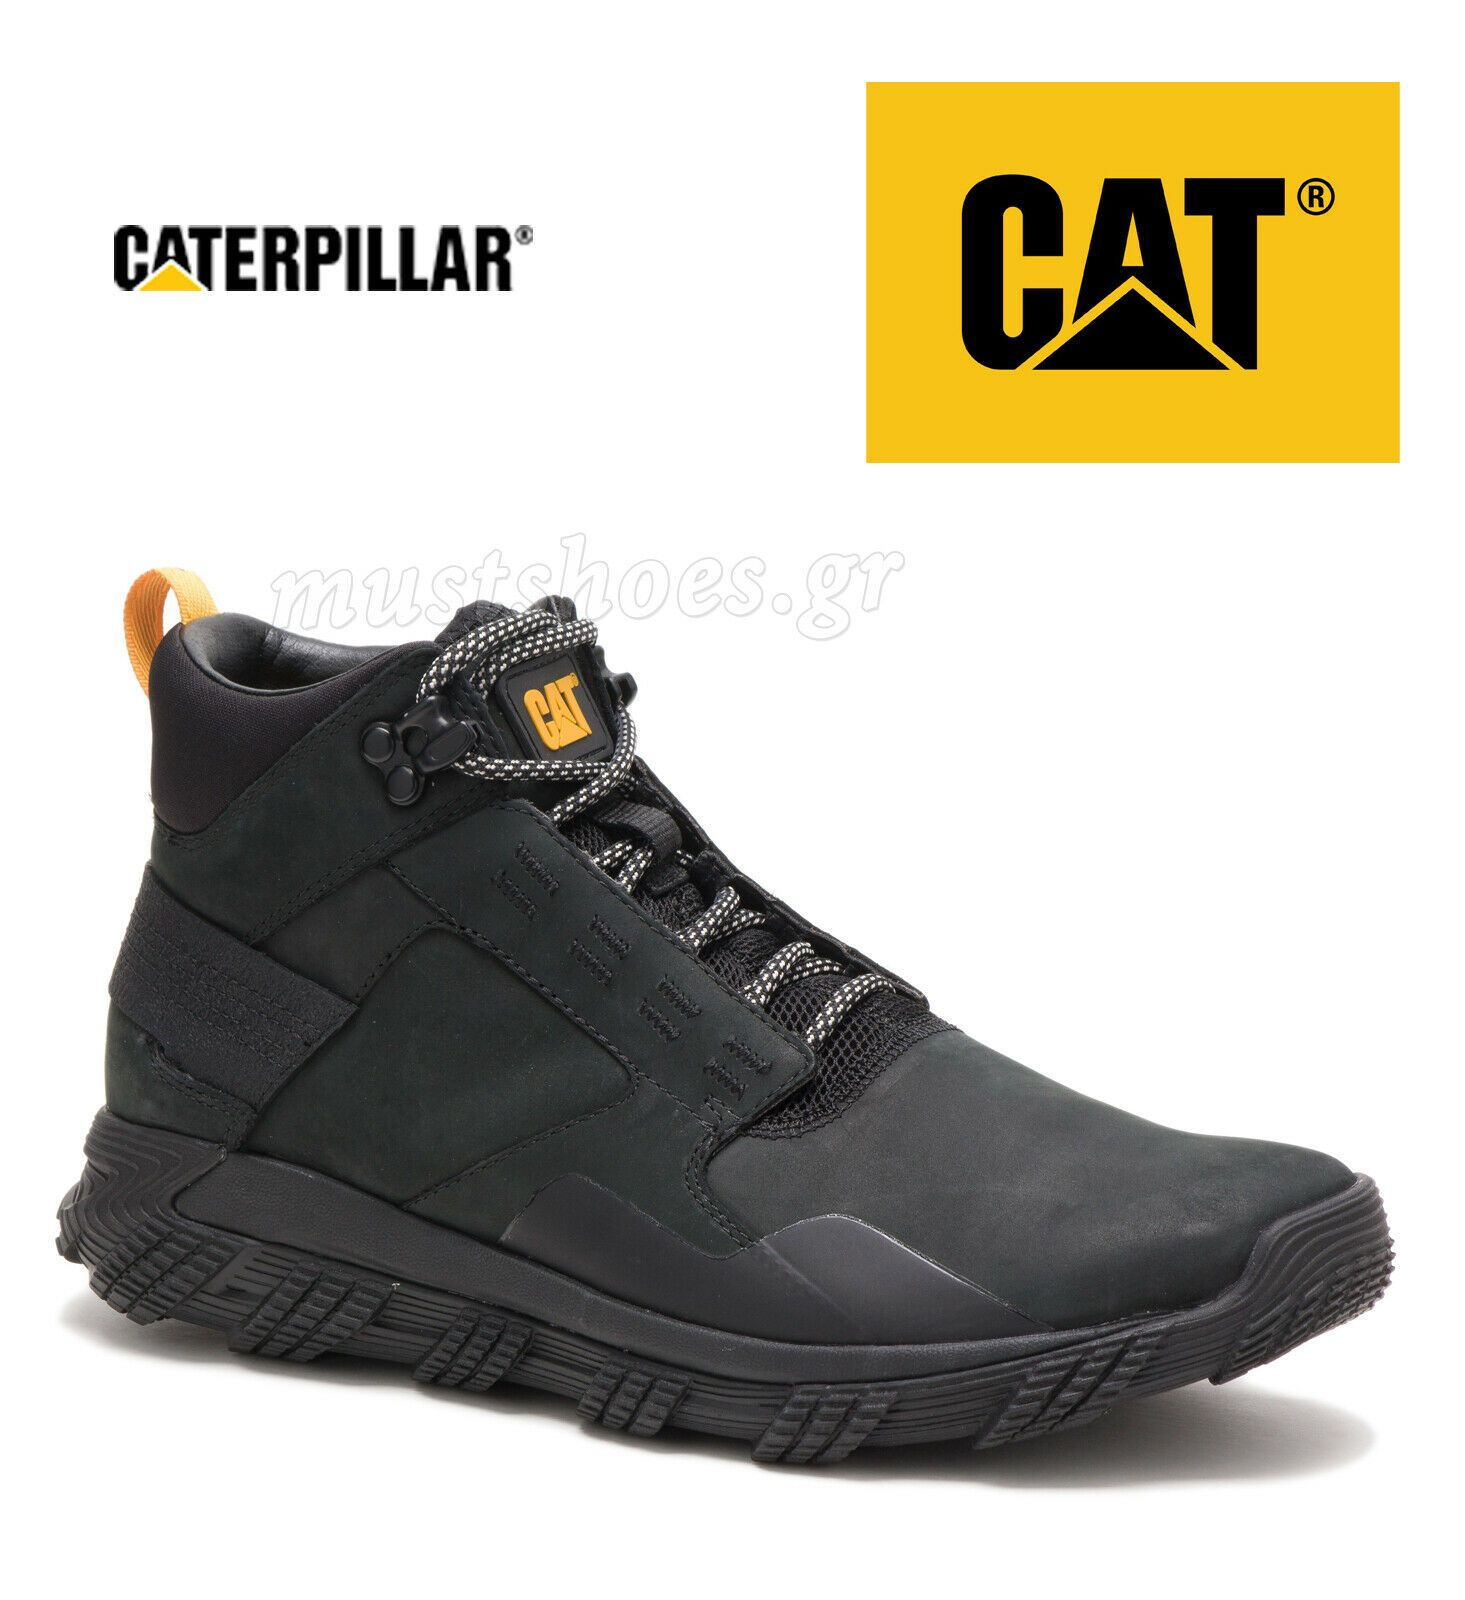 Caterpillar Boot Cat 723543 Influence20 Black 139 00 Cat 723543 Influence20 Black Ease Is Lightweigh Caterpillar Boots Mens Shoes Boots Mens Boots Fashion